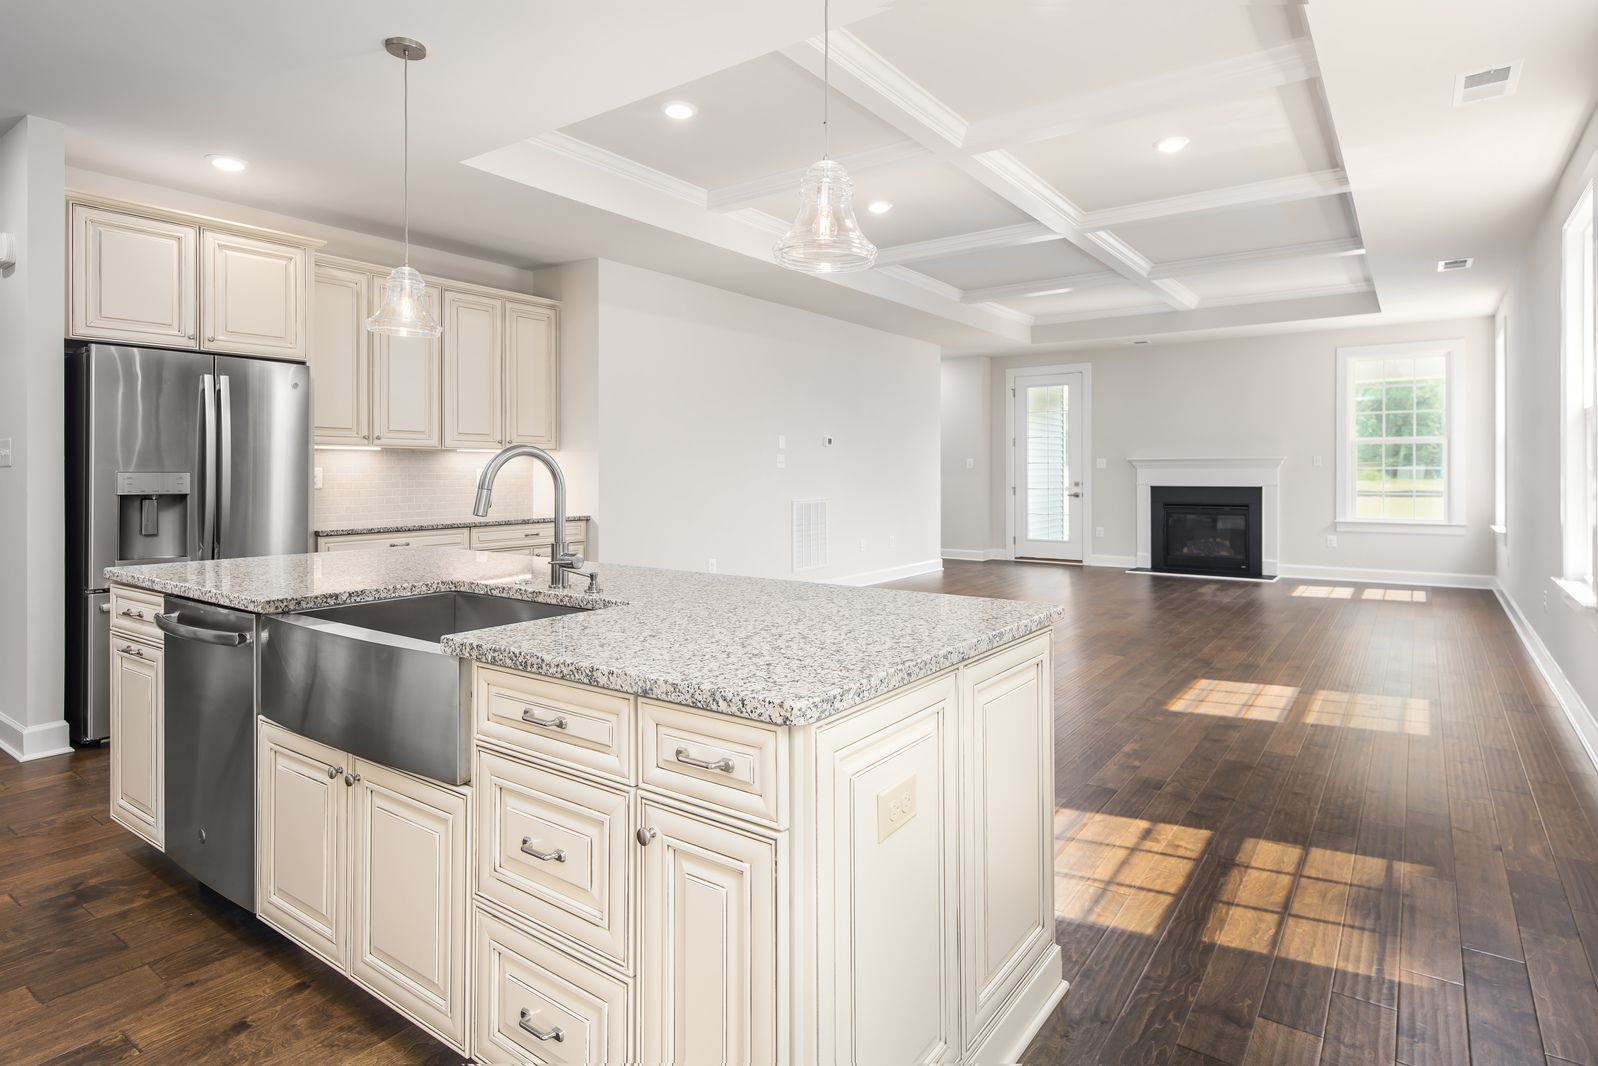 Kitchen featured in the Bennington By NVHomes in Philadelphia, PA